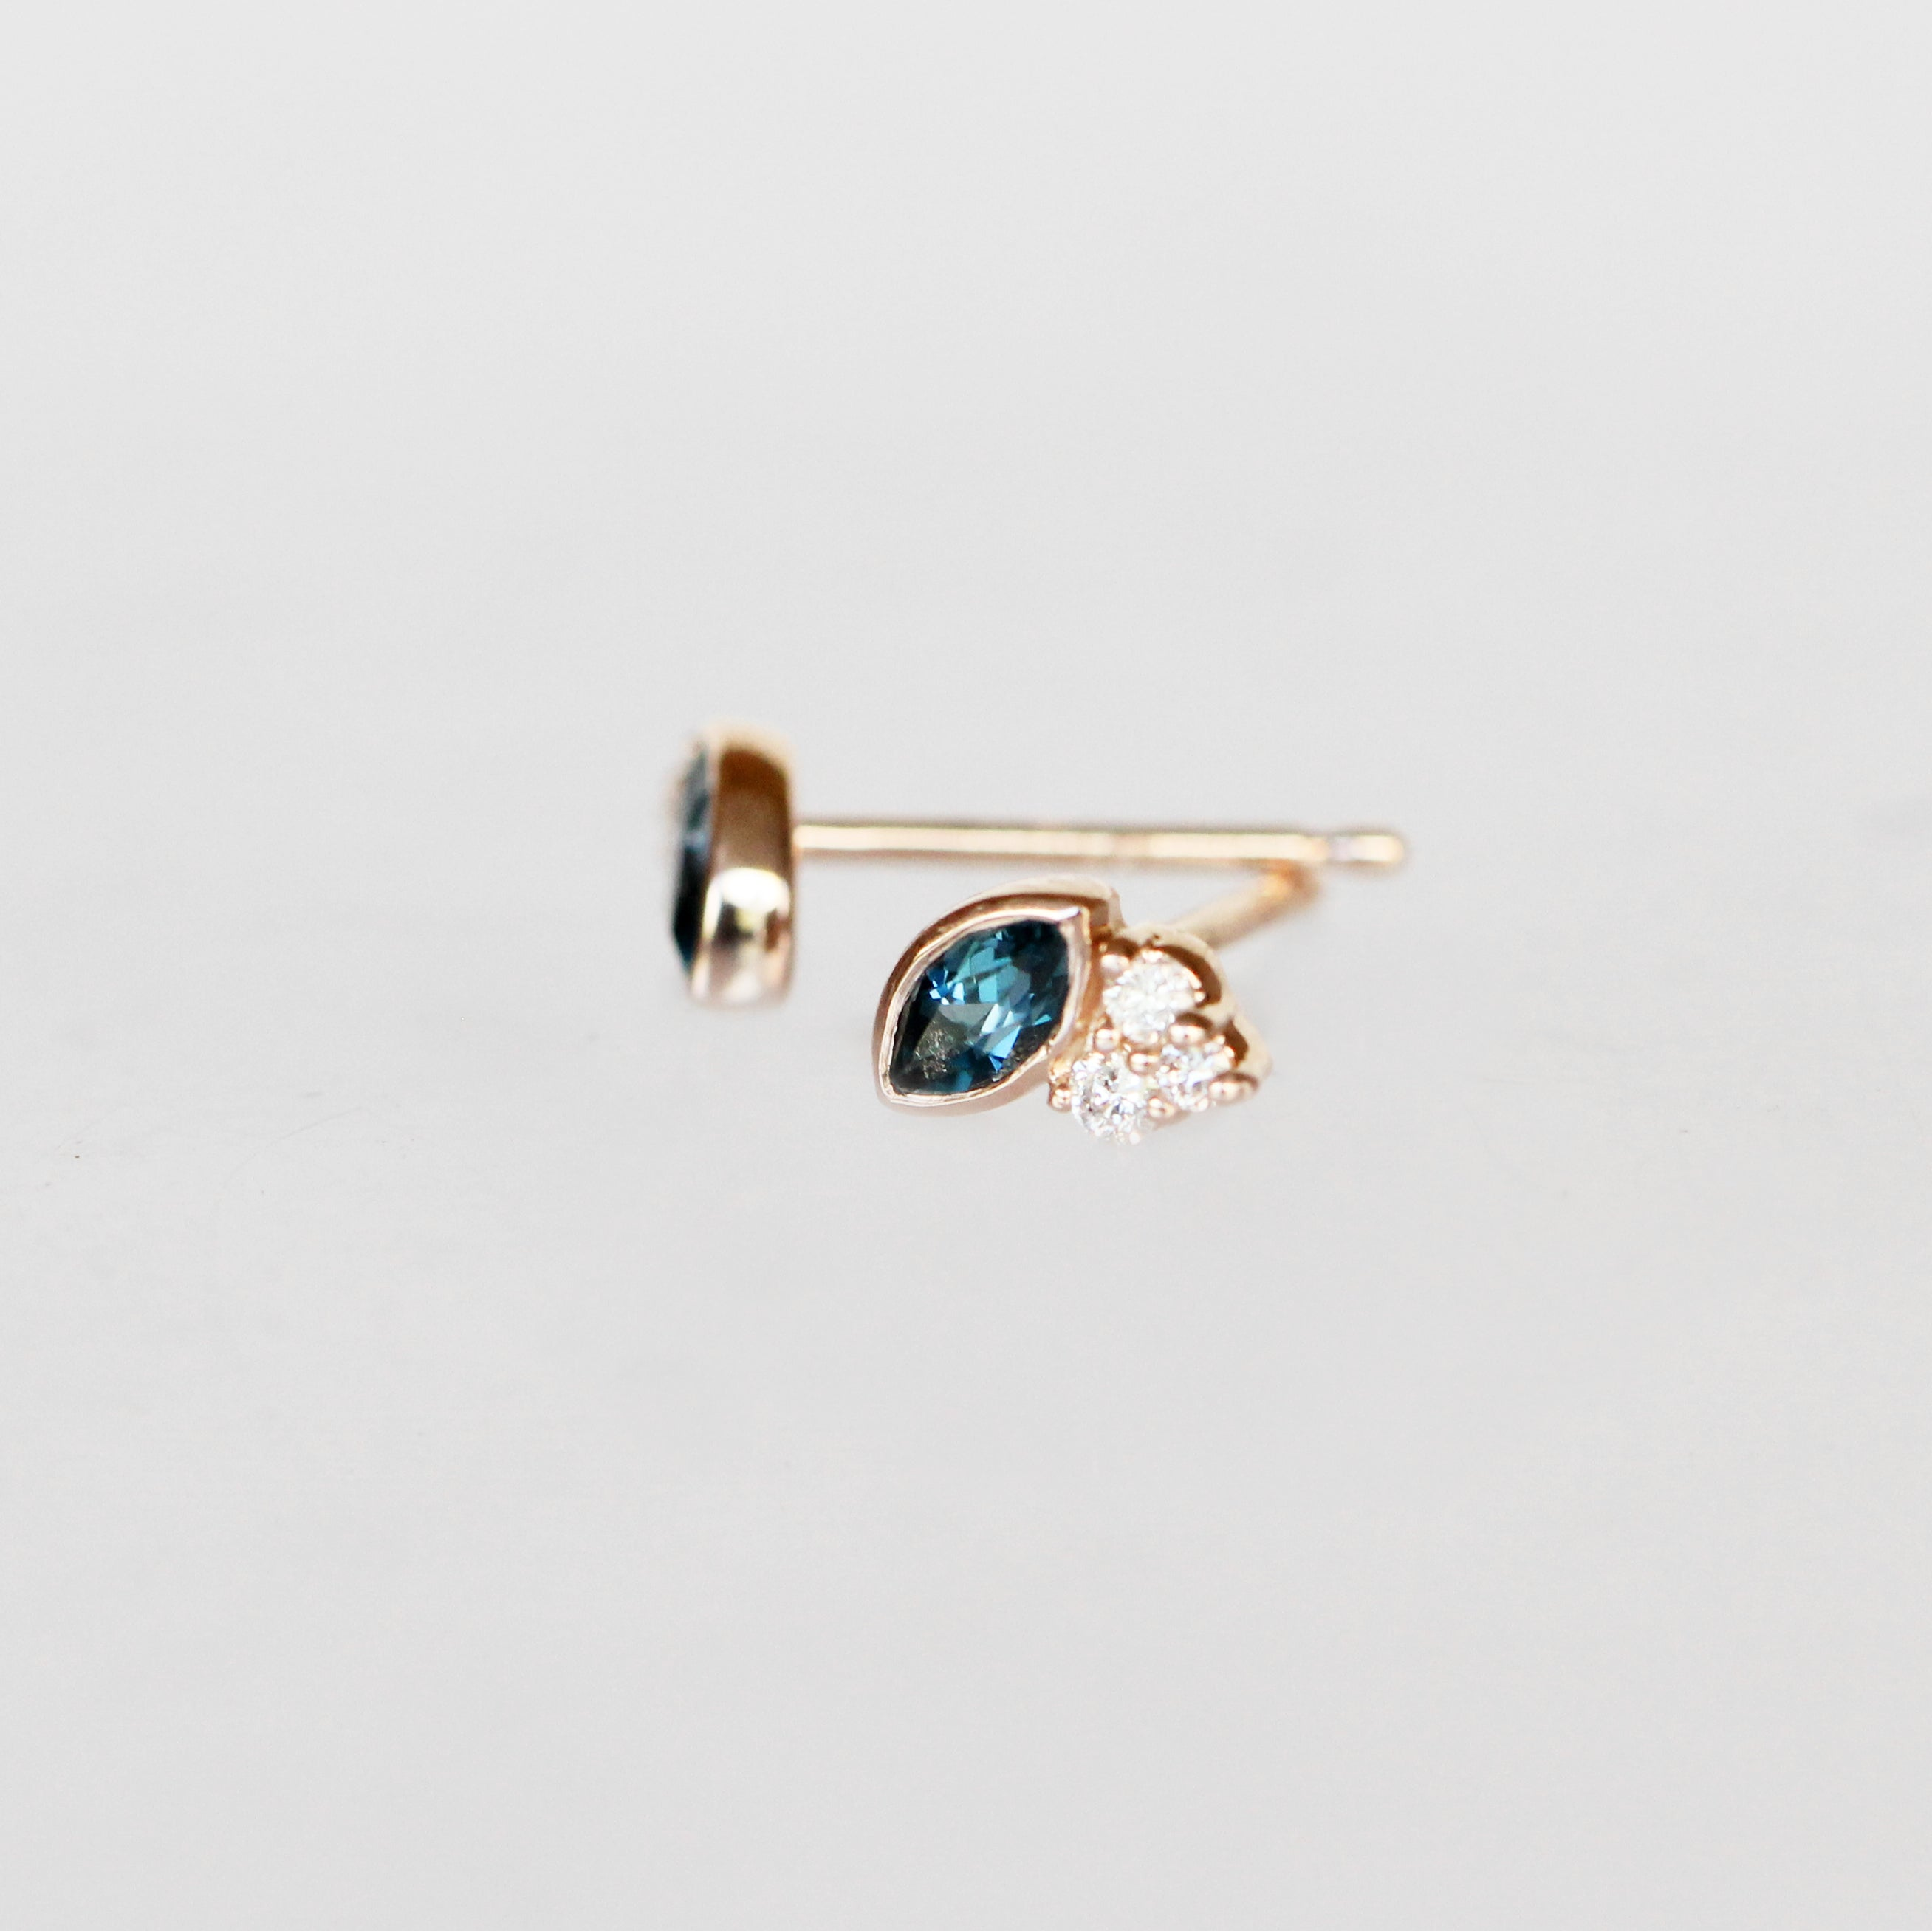 Jolean Earrings with London Blue Topaz + Diamonds - 14k Rose Gold- Ready to Ship - Salt & Pepper Celestial Diamond Engagement Rings and Wedding Bands  by Midwinter Co.